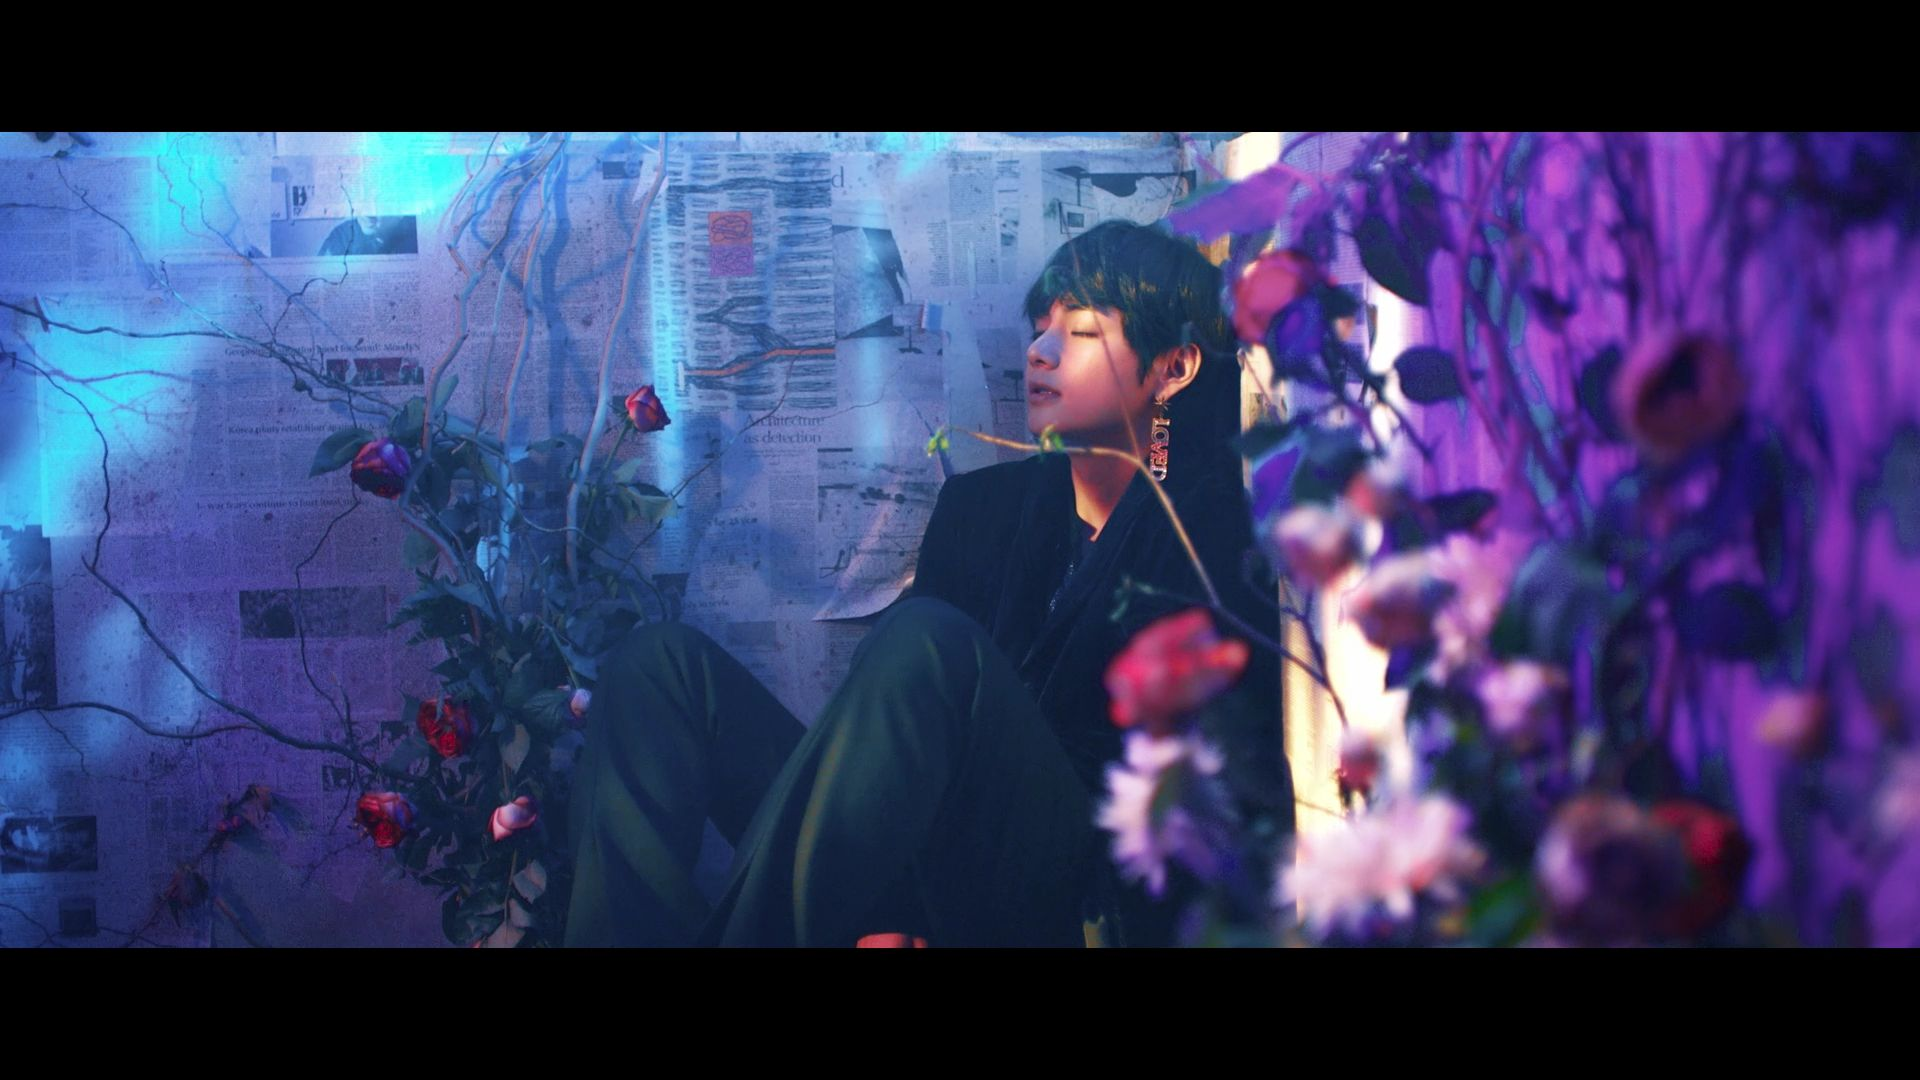 Bts Live Wallpapers Top Free Bts Live Backgrounds Wallpaperaccess